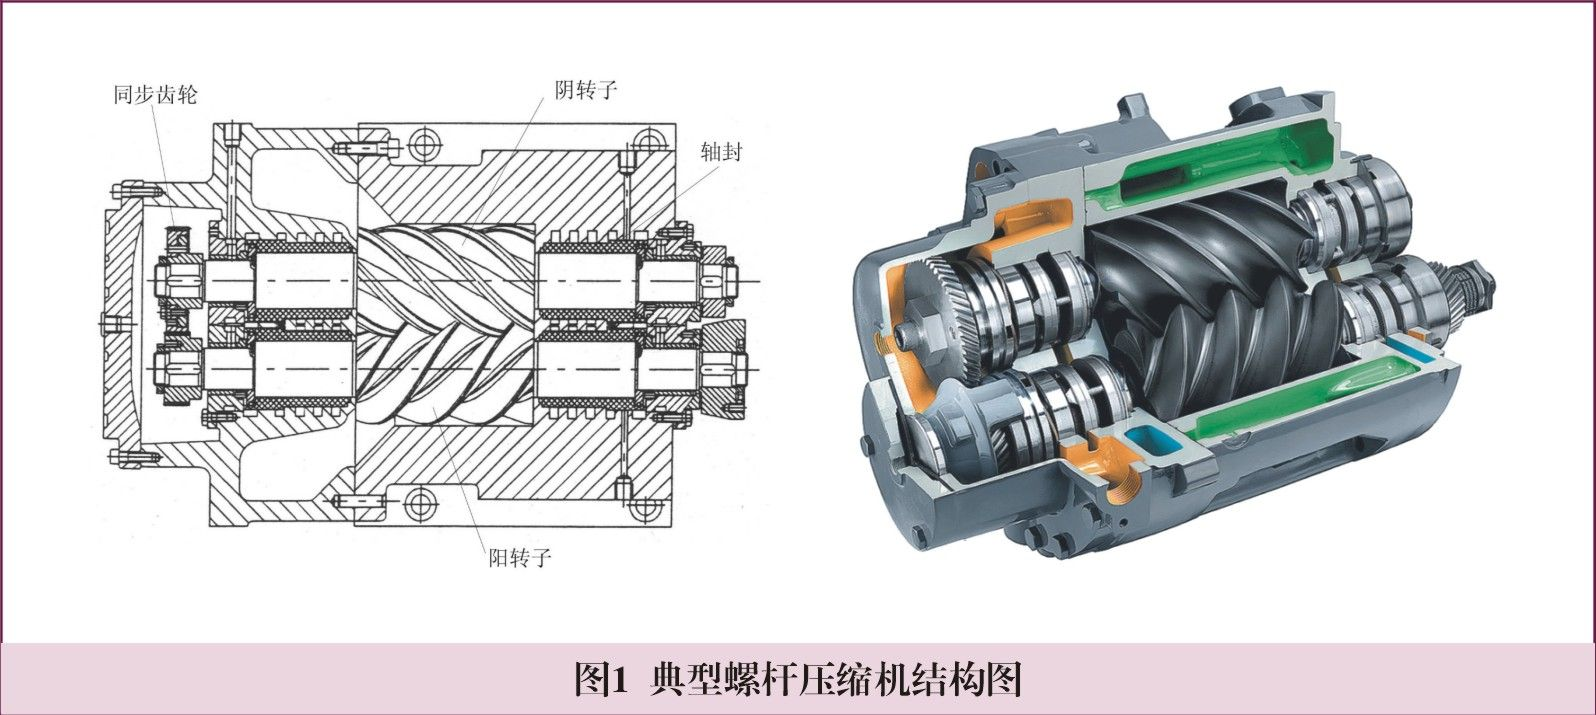 Electric motor instrument screw air compressor for 1 stage vs 2 stage vacuum motor